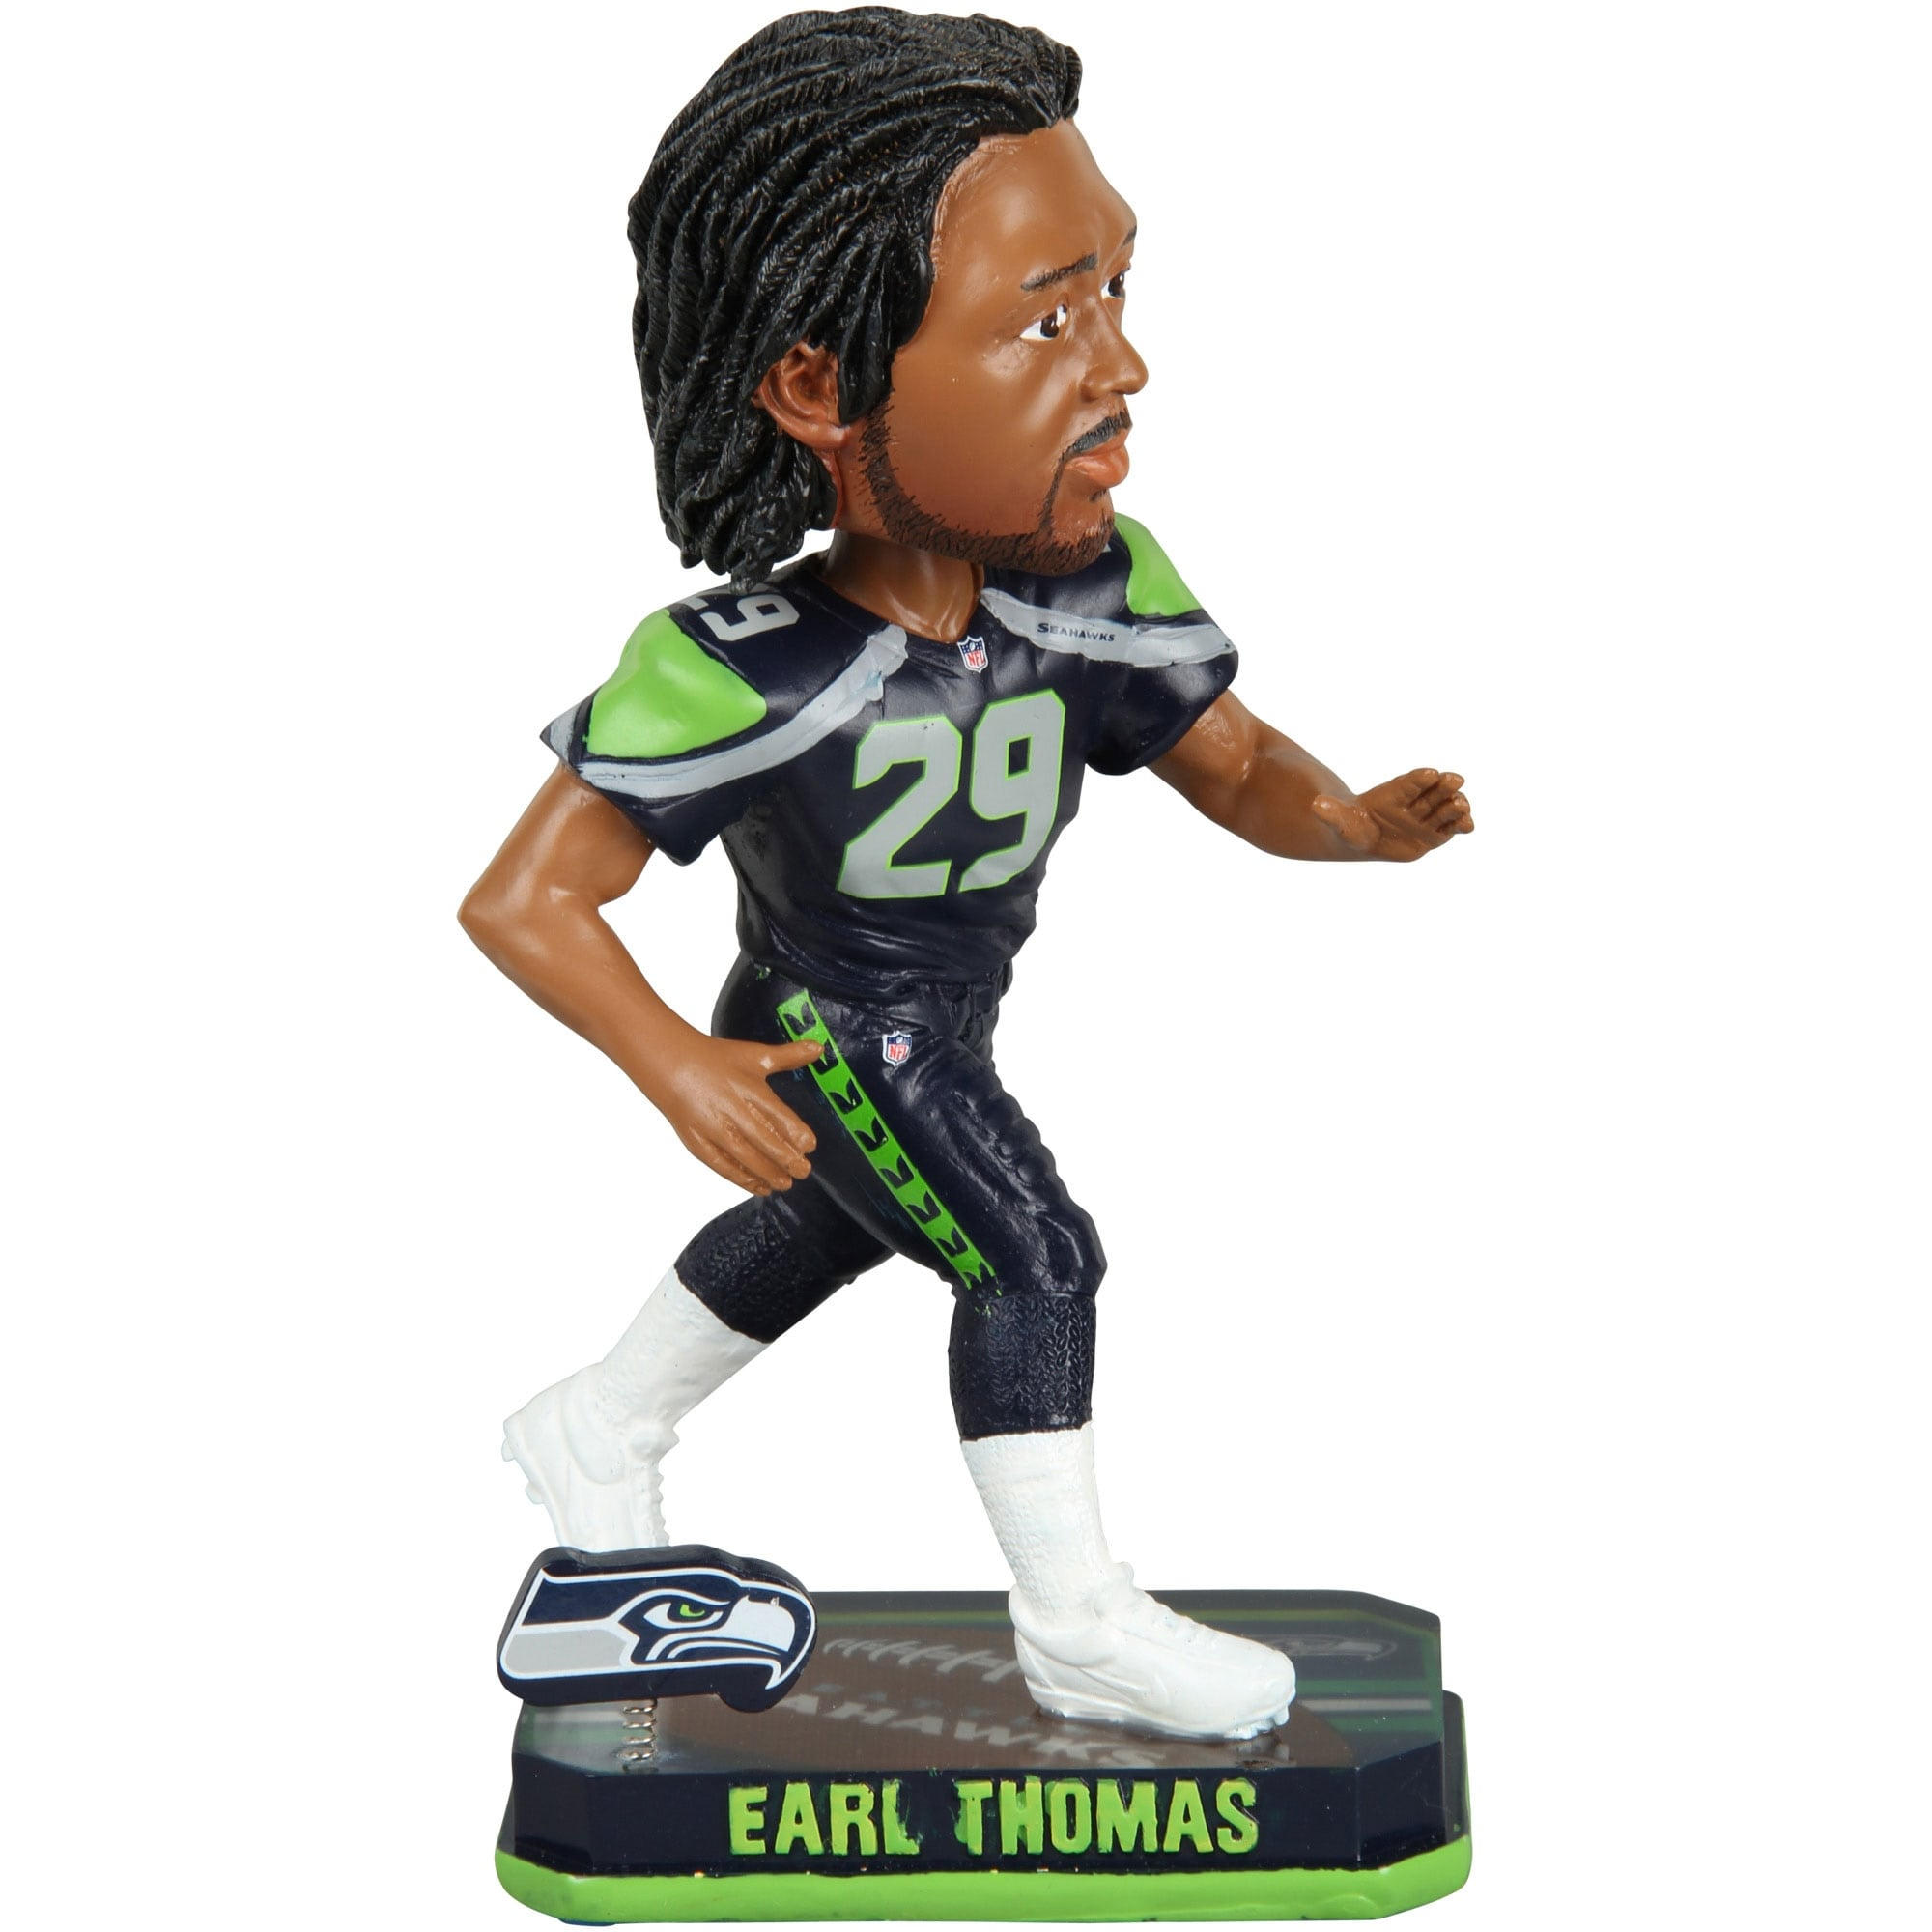 Earl Thomas Seattle Seahawks Bobblehead